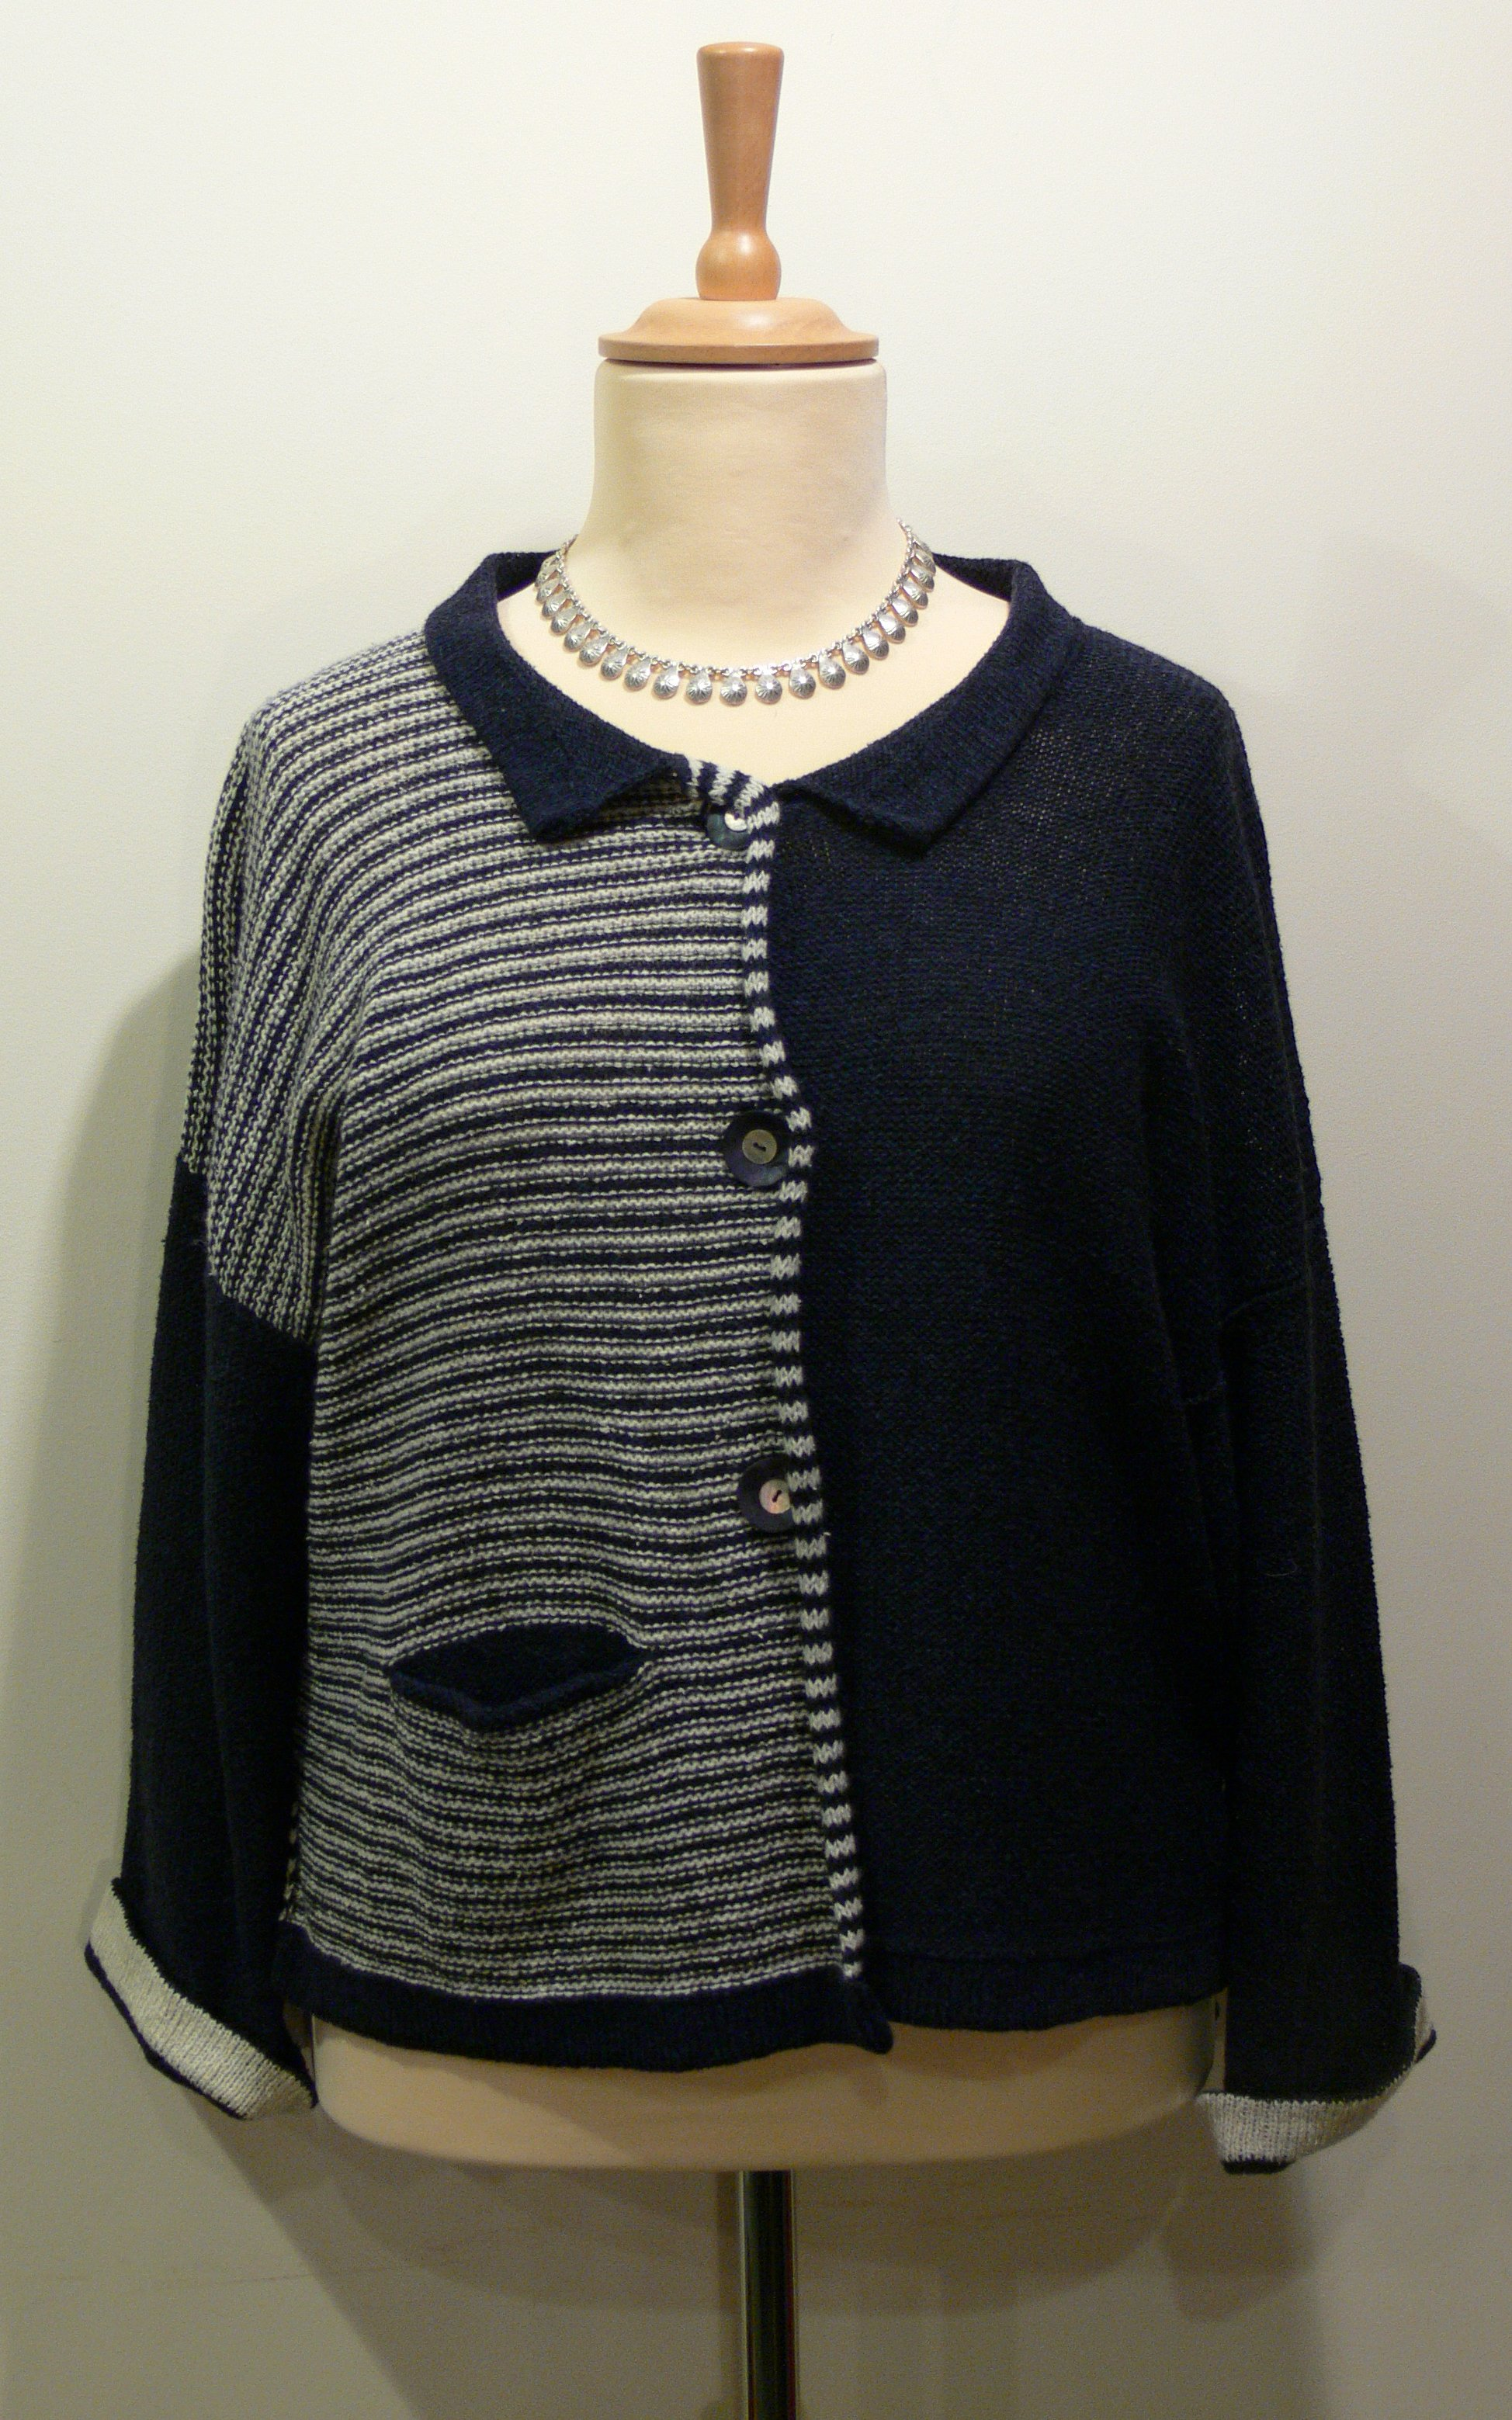 Aretha Short Jacket in midnight/ivory. Knitted in silk/lambswool. designed and made in Orkney.